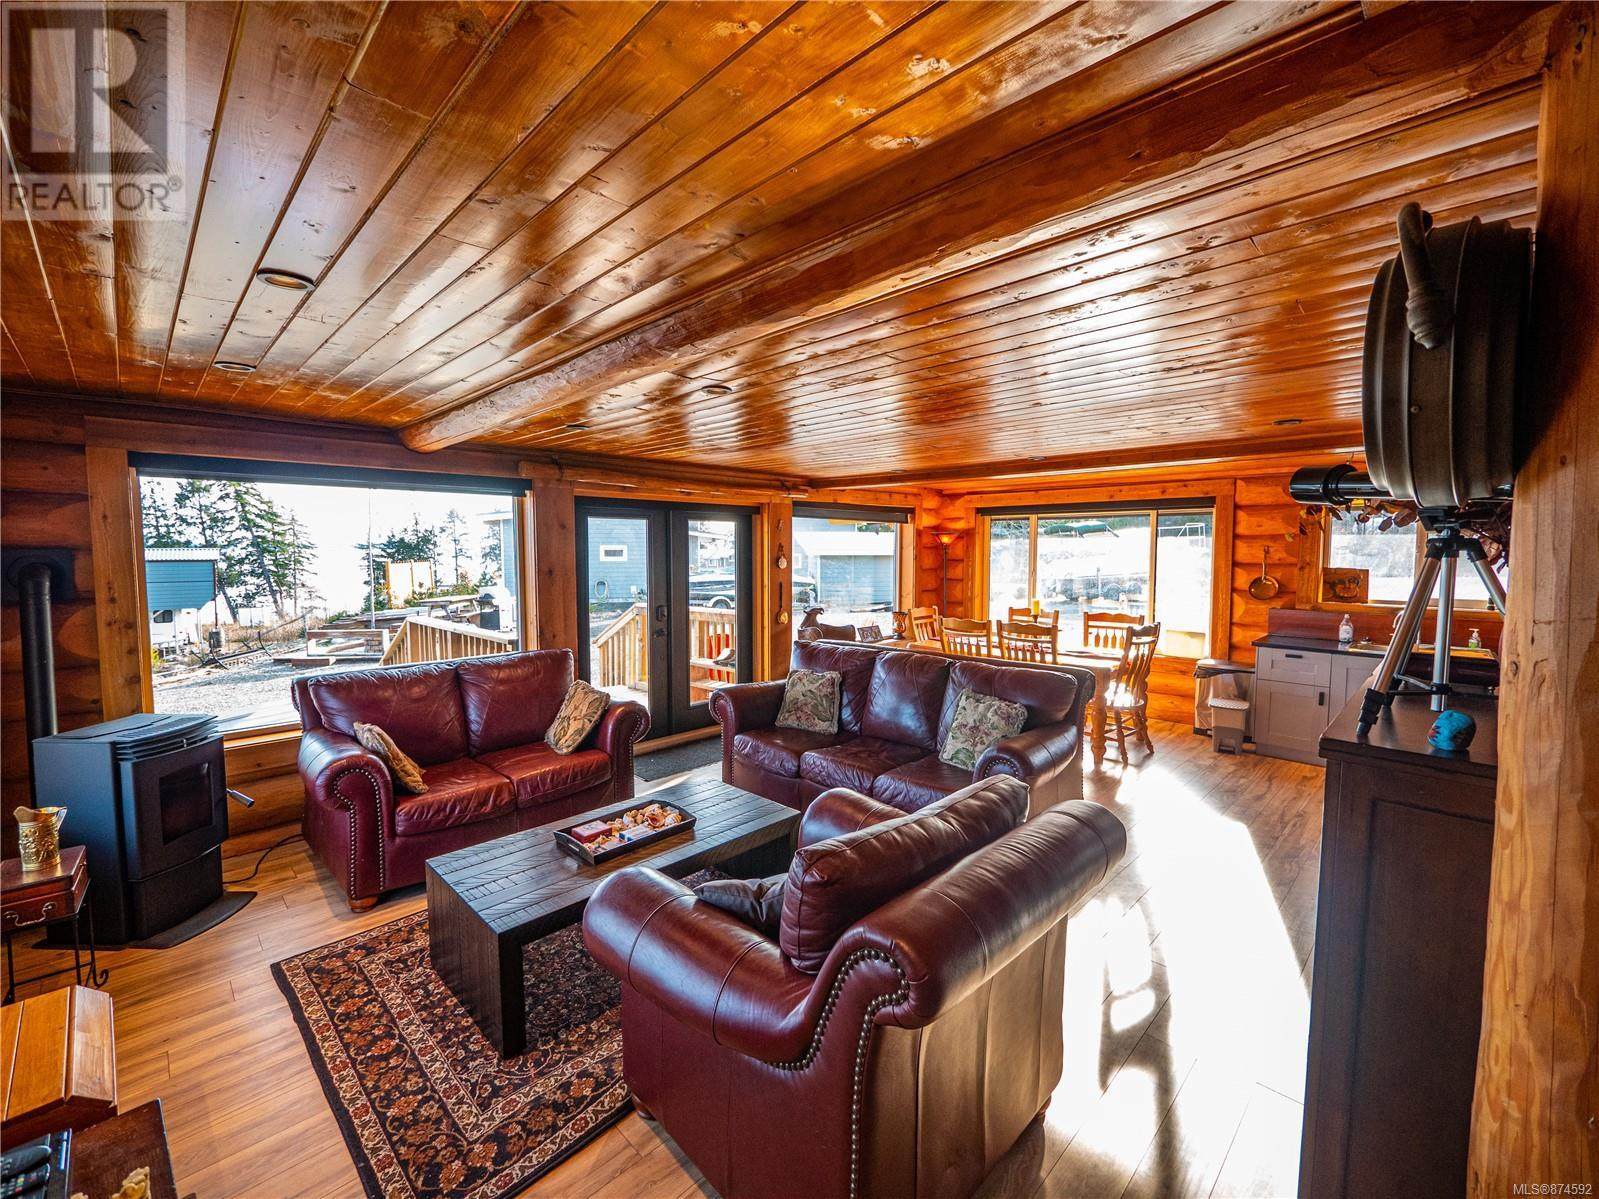 MLS® #874592 - Ucluelet House For sale Image #4